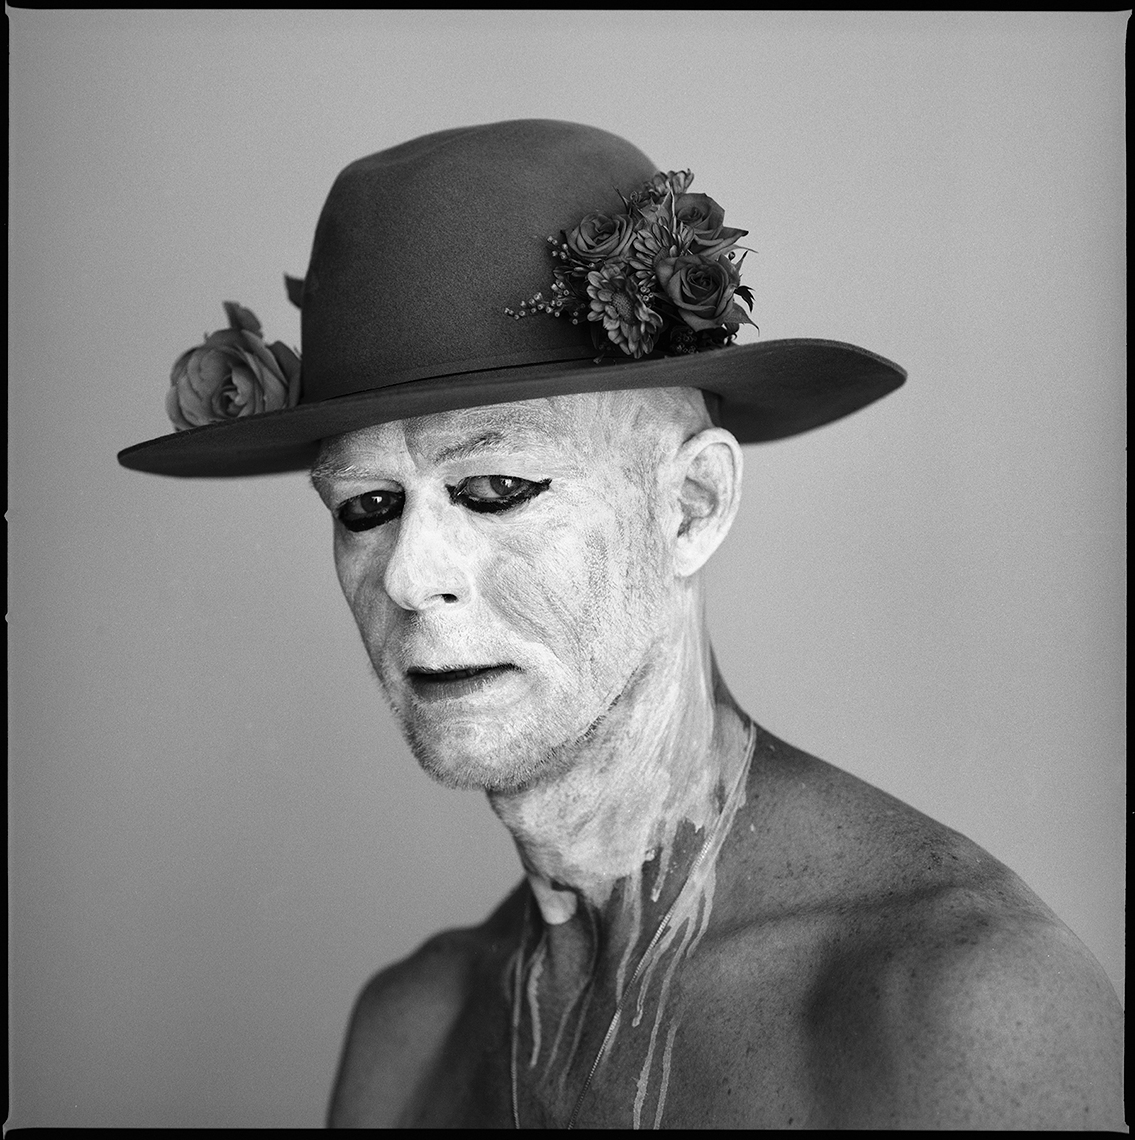 Marc_Johnson_hat_portrait_web